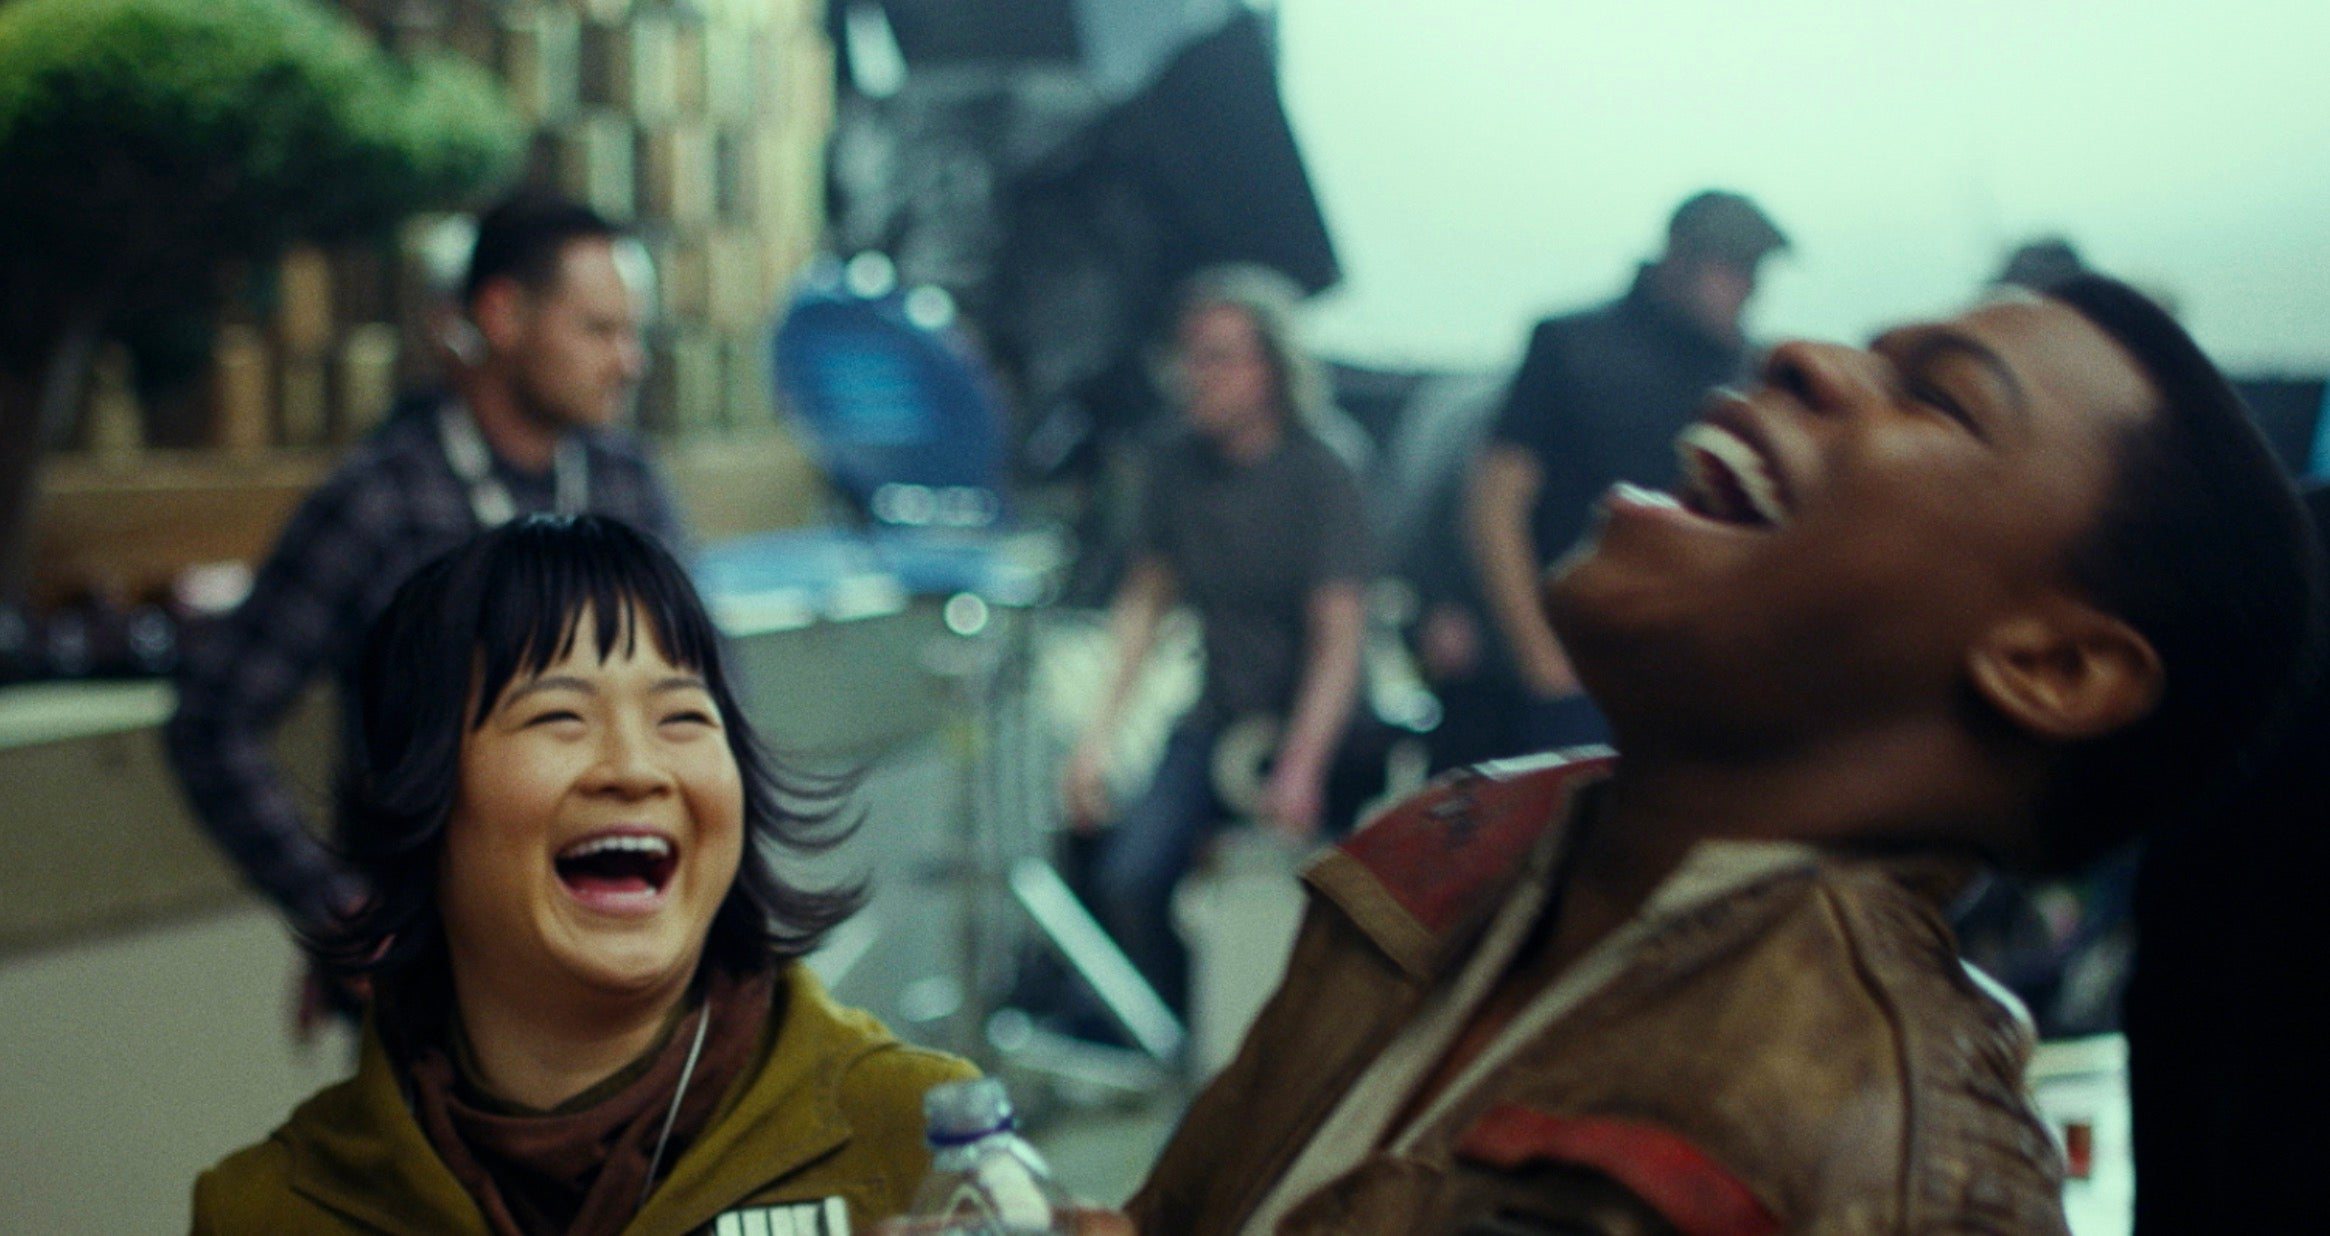 Ridiculous Change.org Petitions About The Last Jedi, Ranked